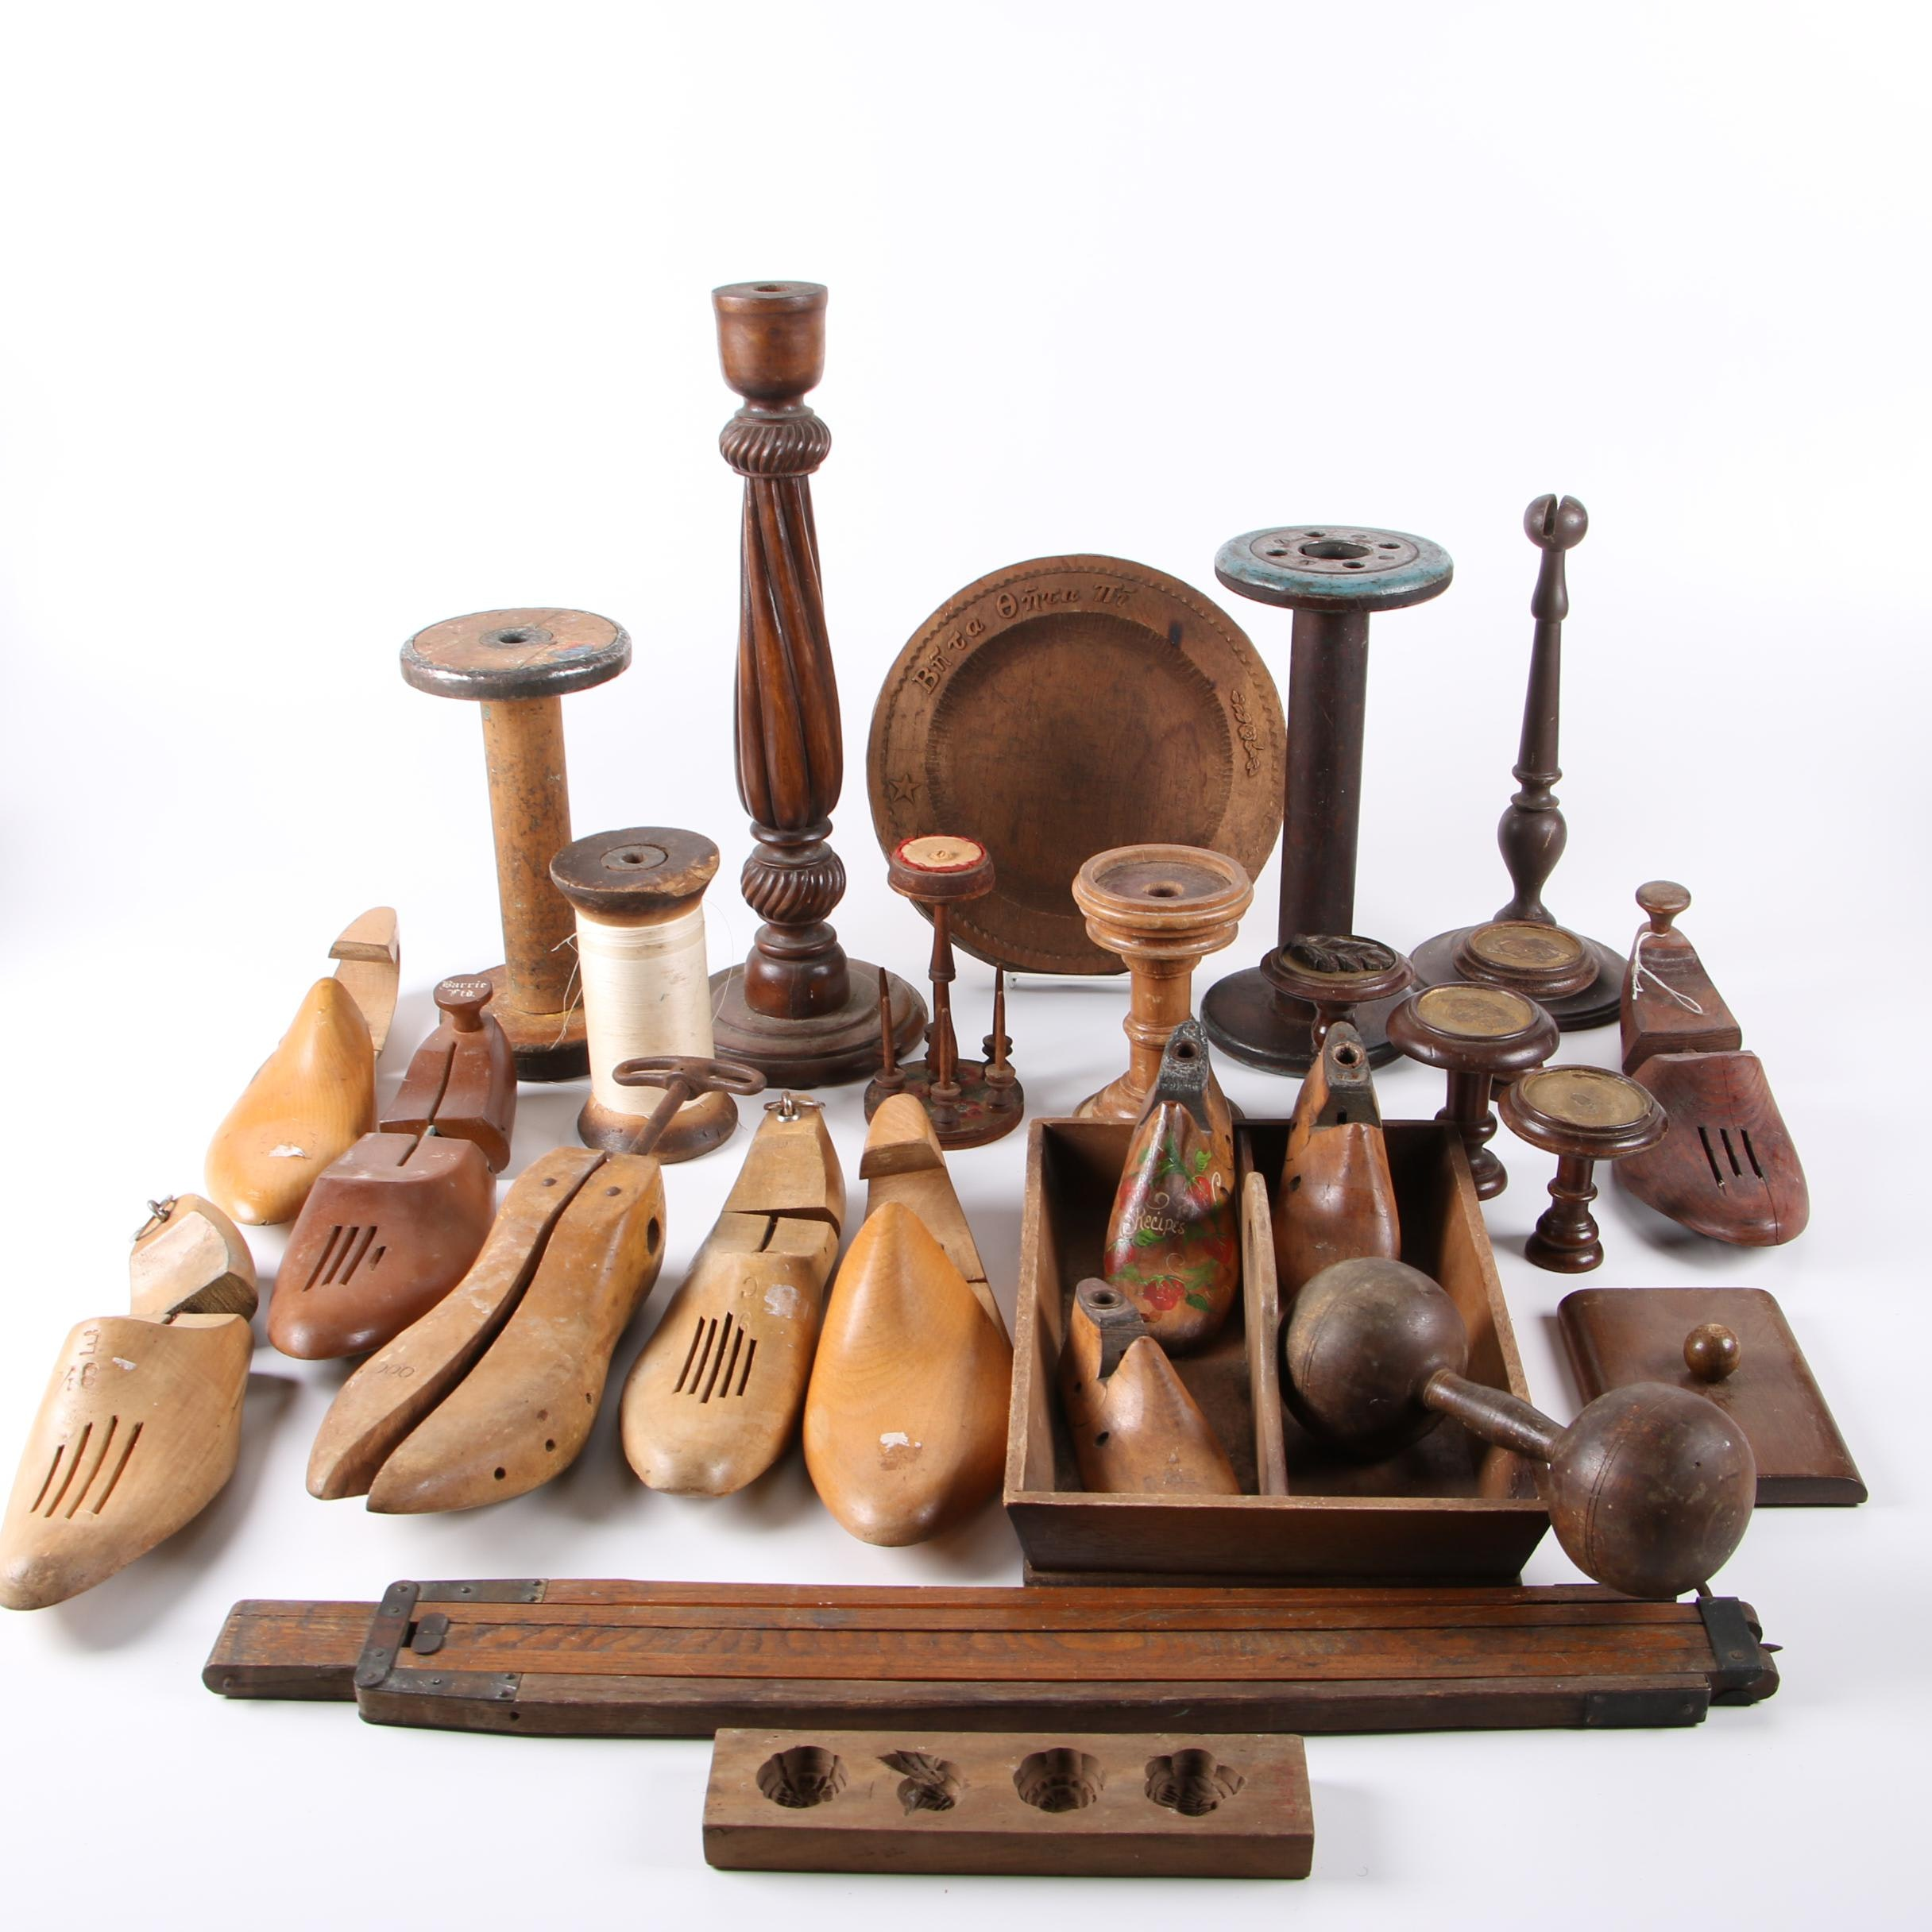 Shoe Lasts, Spools, and Other Vintage Wooden Items